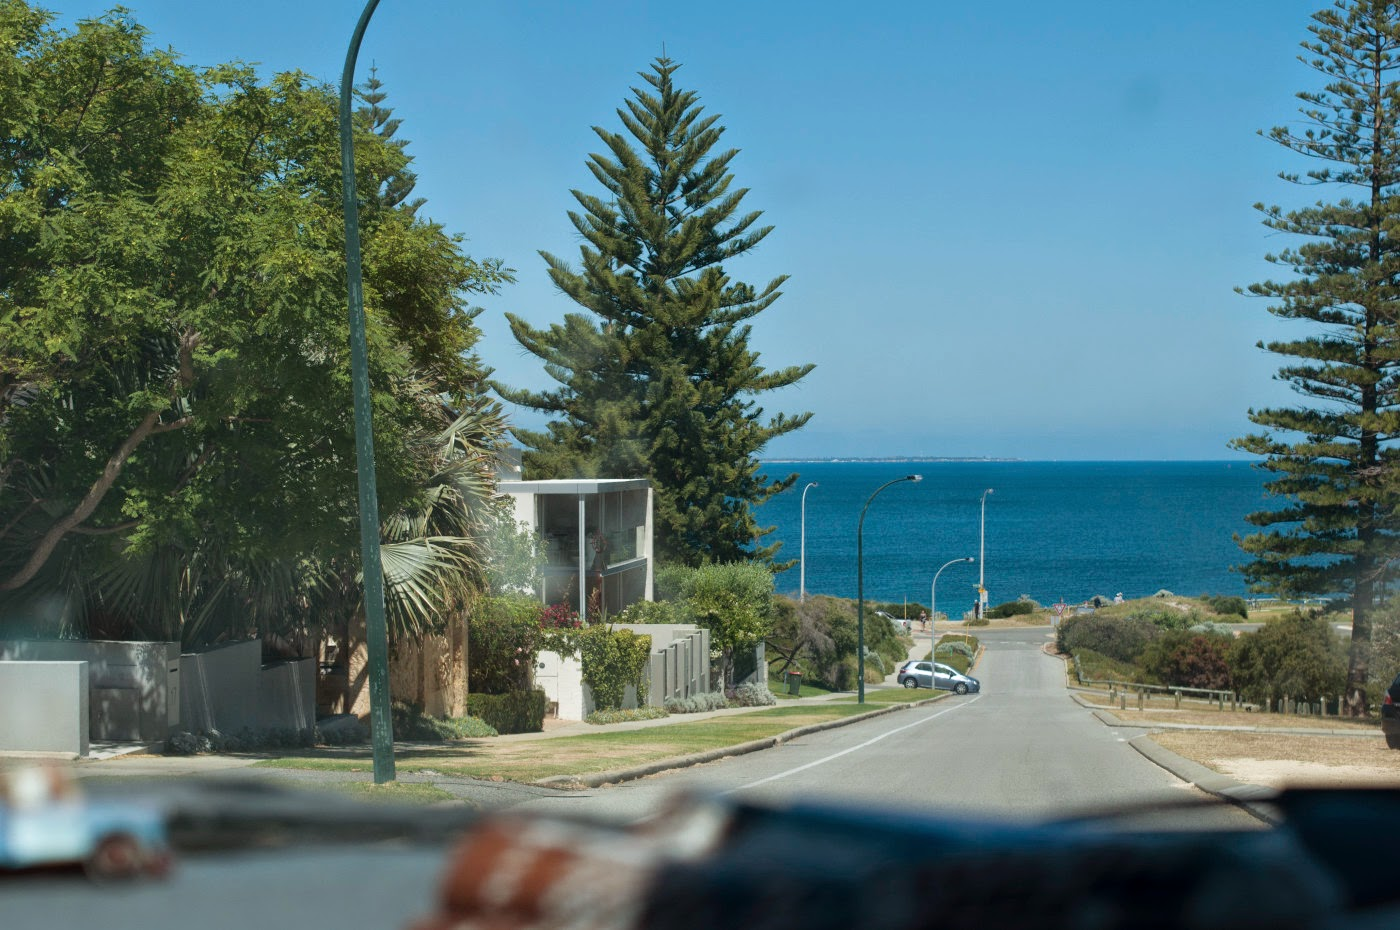 Photographic art, Tim Macauley, out a window, Cottesloe, perth, Australia, car, travel, photography, beach, Australia, Australiana, the light monkey collective, you won't see this at MoMA, candid, snapshot.